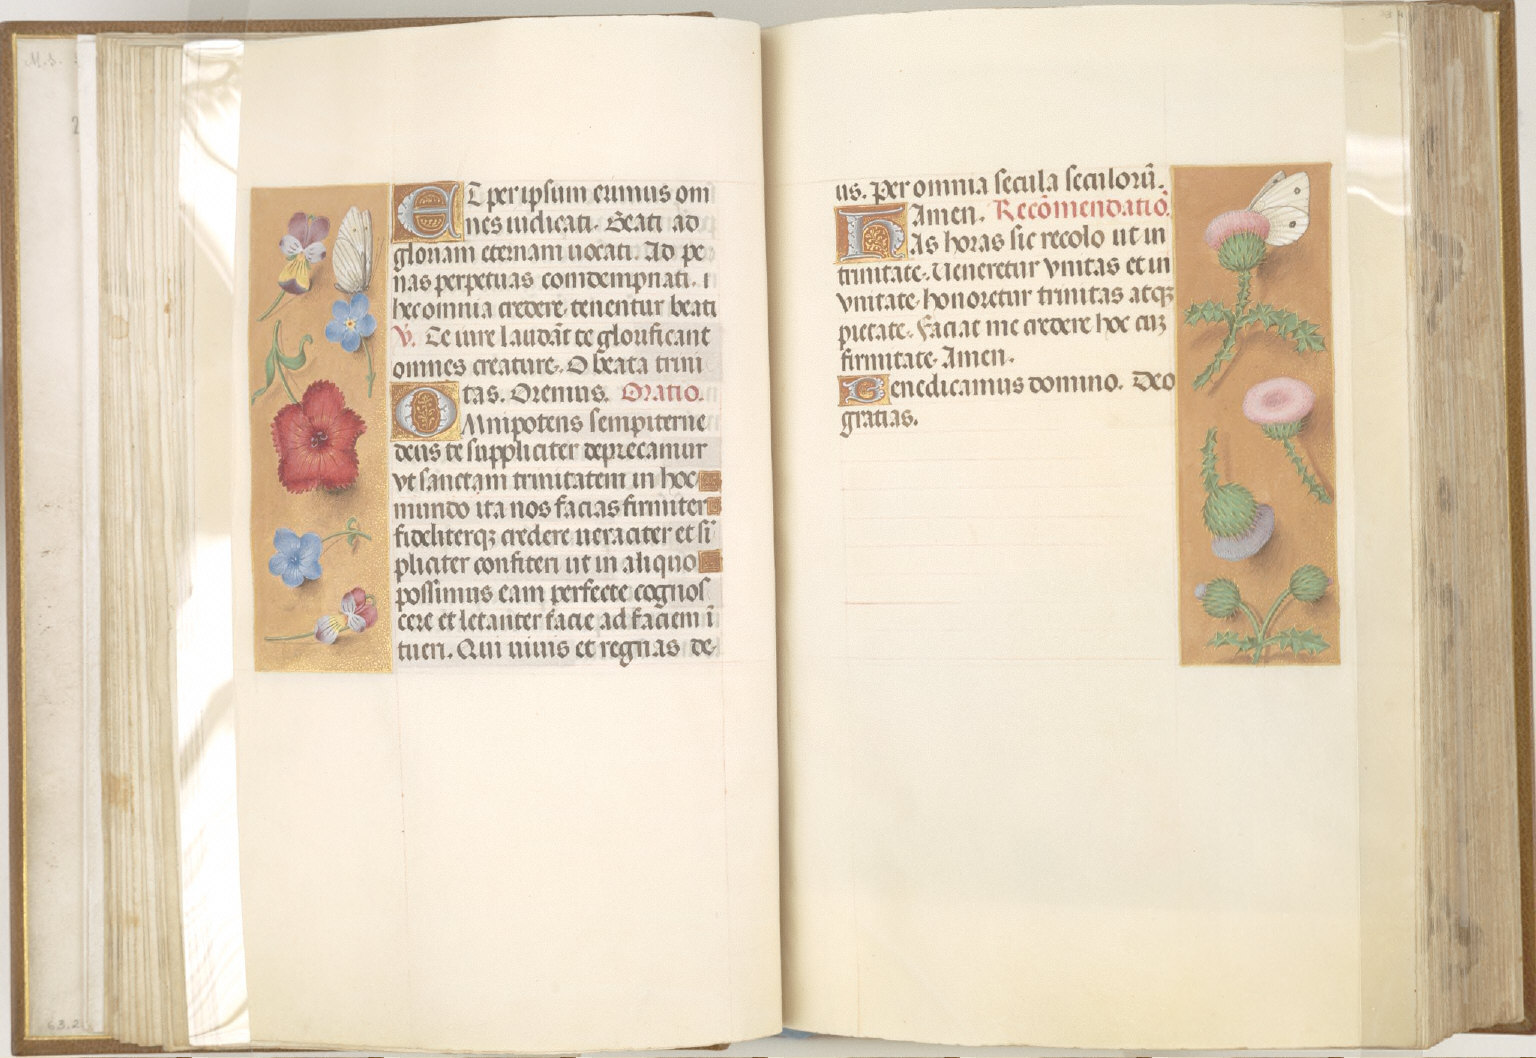 Hours of Queen Isabella the Catholic, Queen of Spain: fol. 23 (recto)